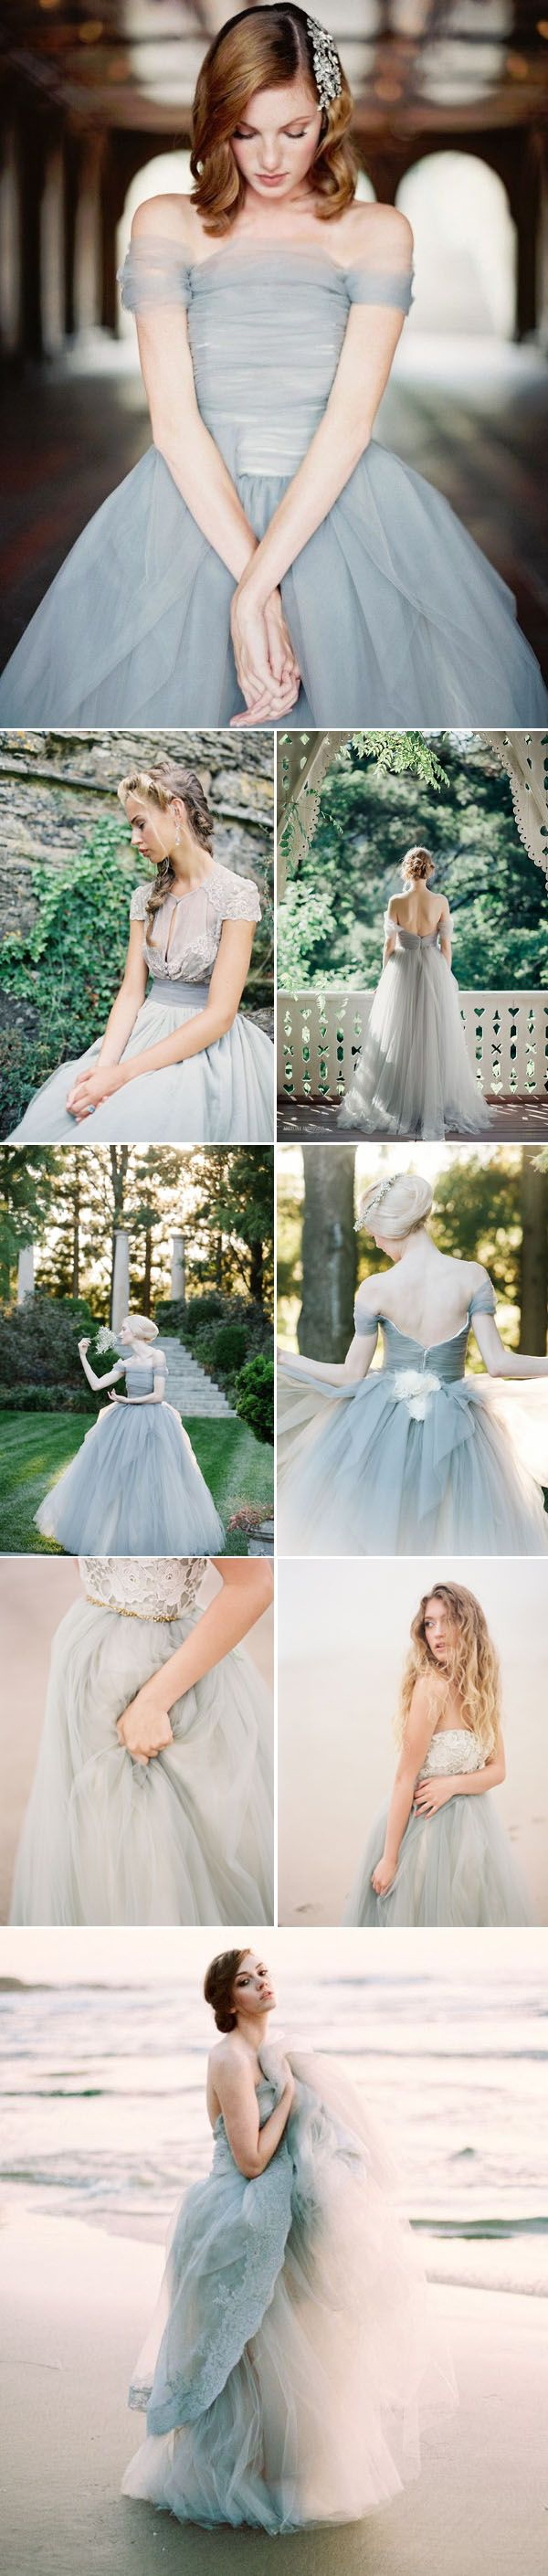 gray dresses for wedding 32 Mint Grey Blush and Gold Wedding Dresses